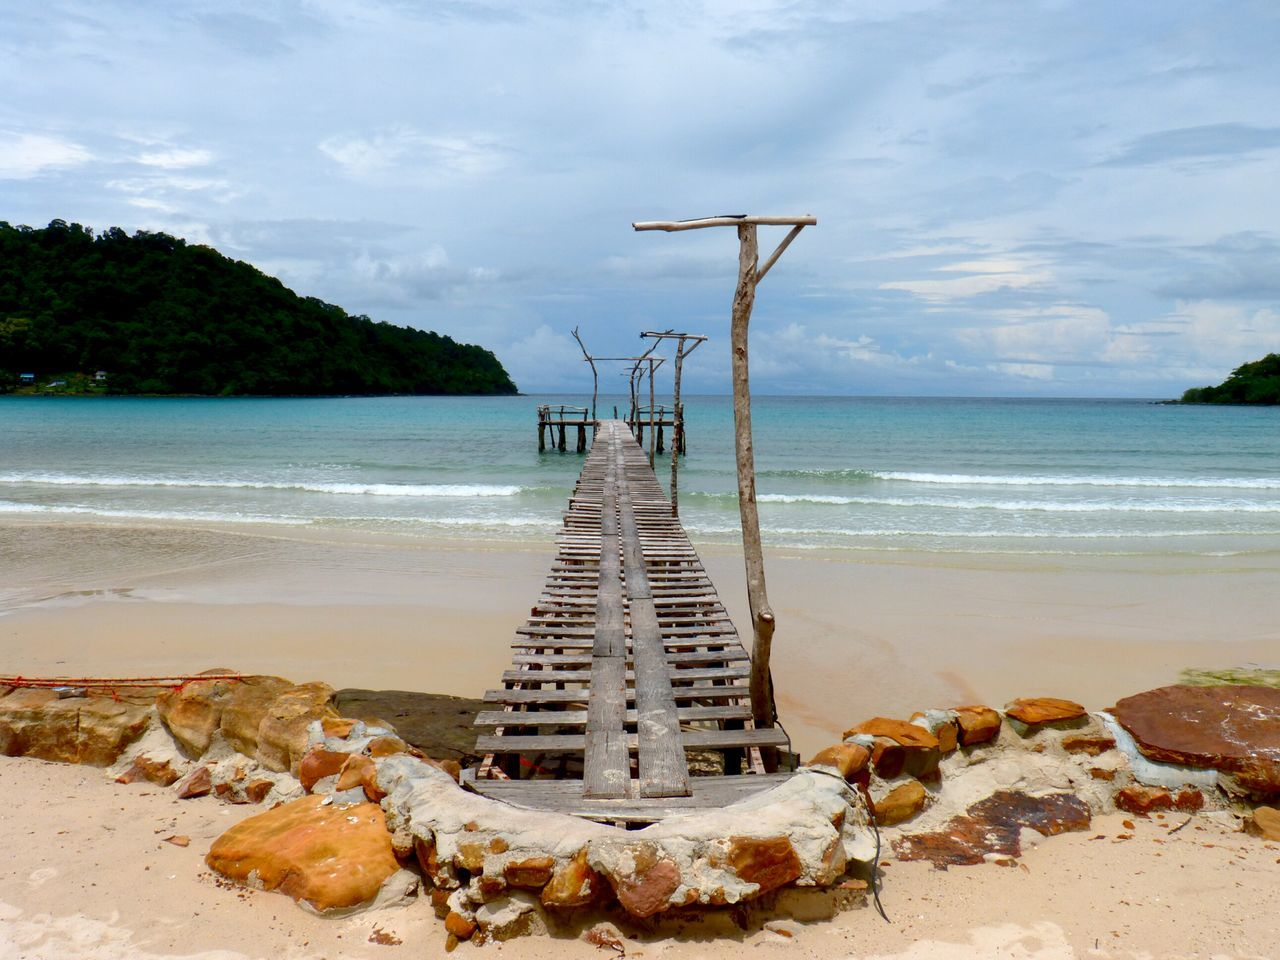 Landscapes Beaches Thailand Islands Beach Waterfront Koh Kood Traveling Amazing View